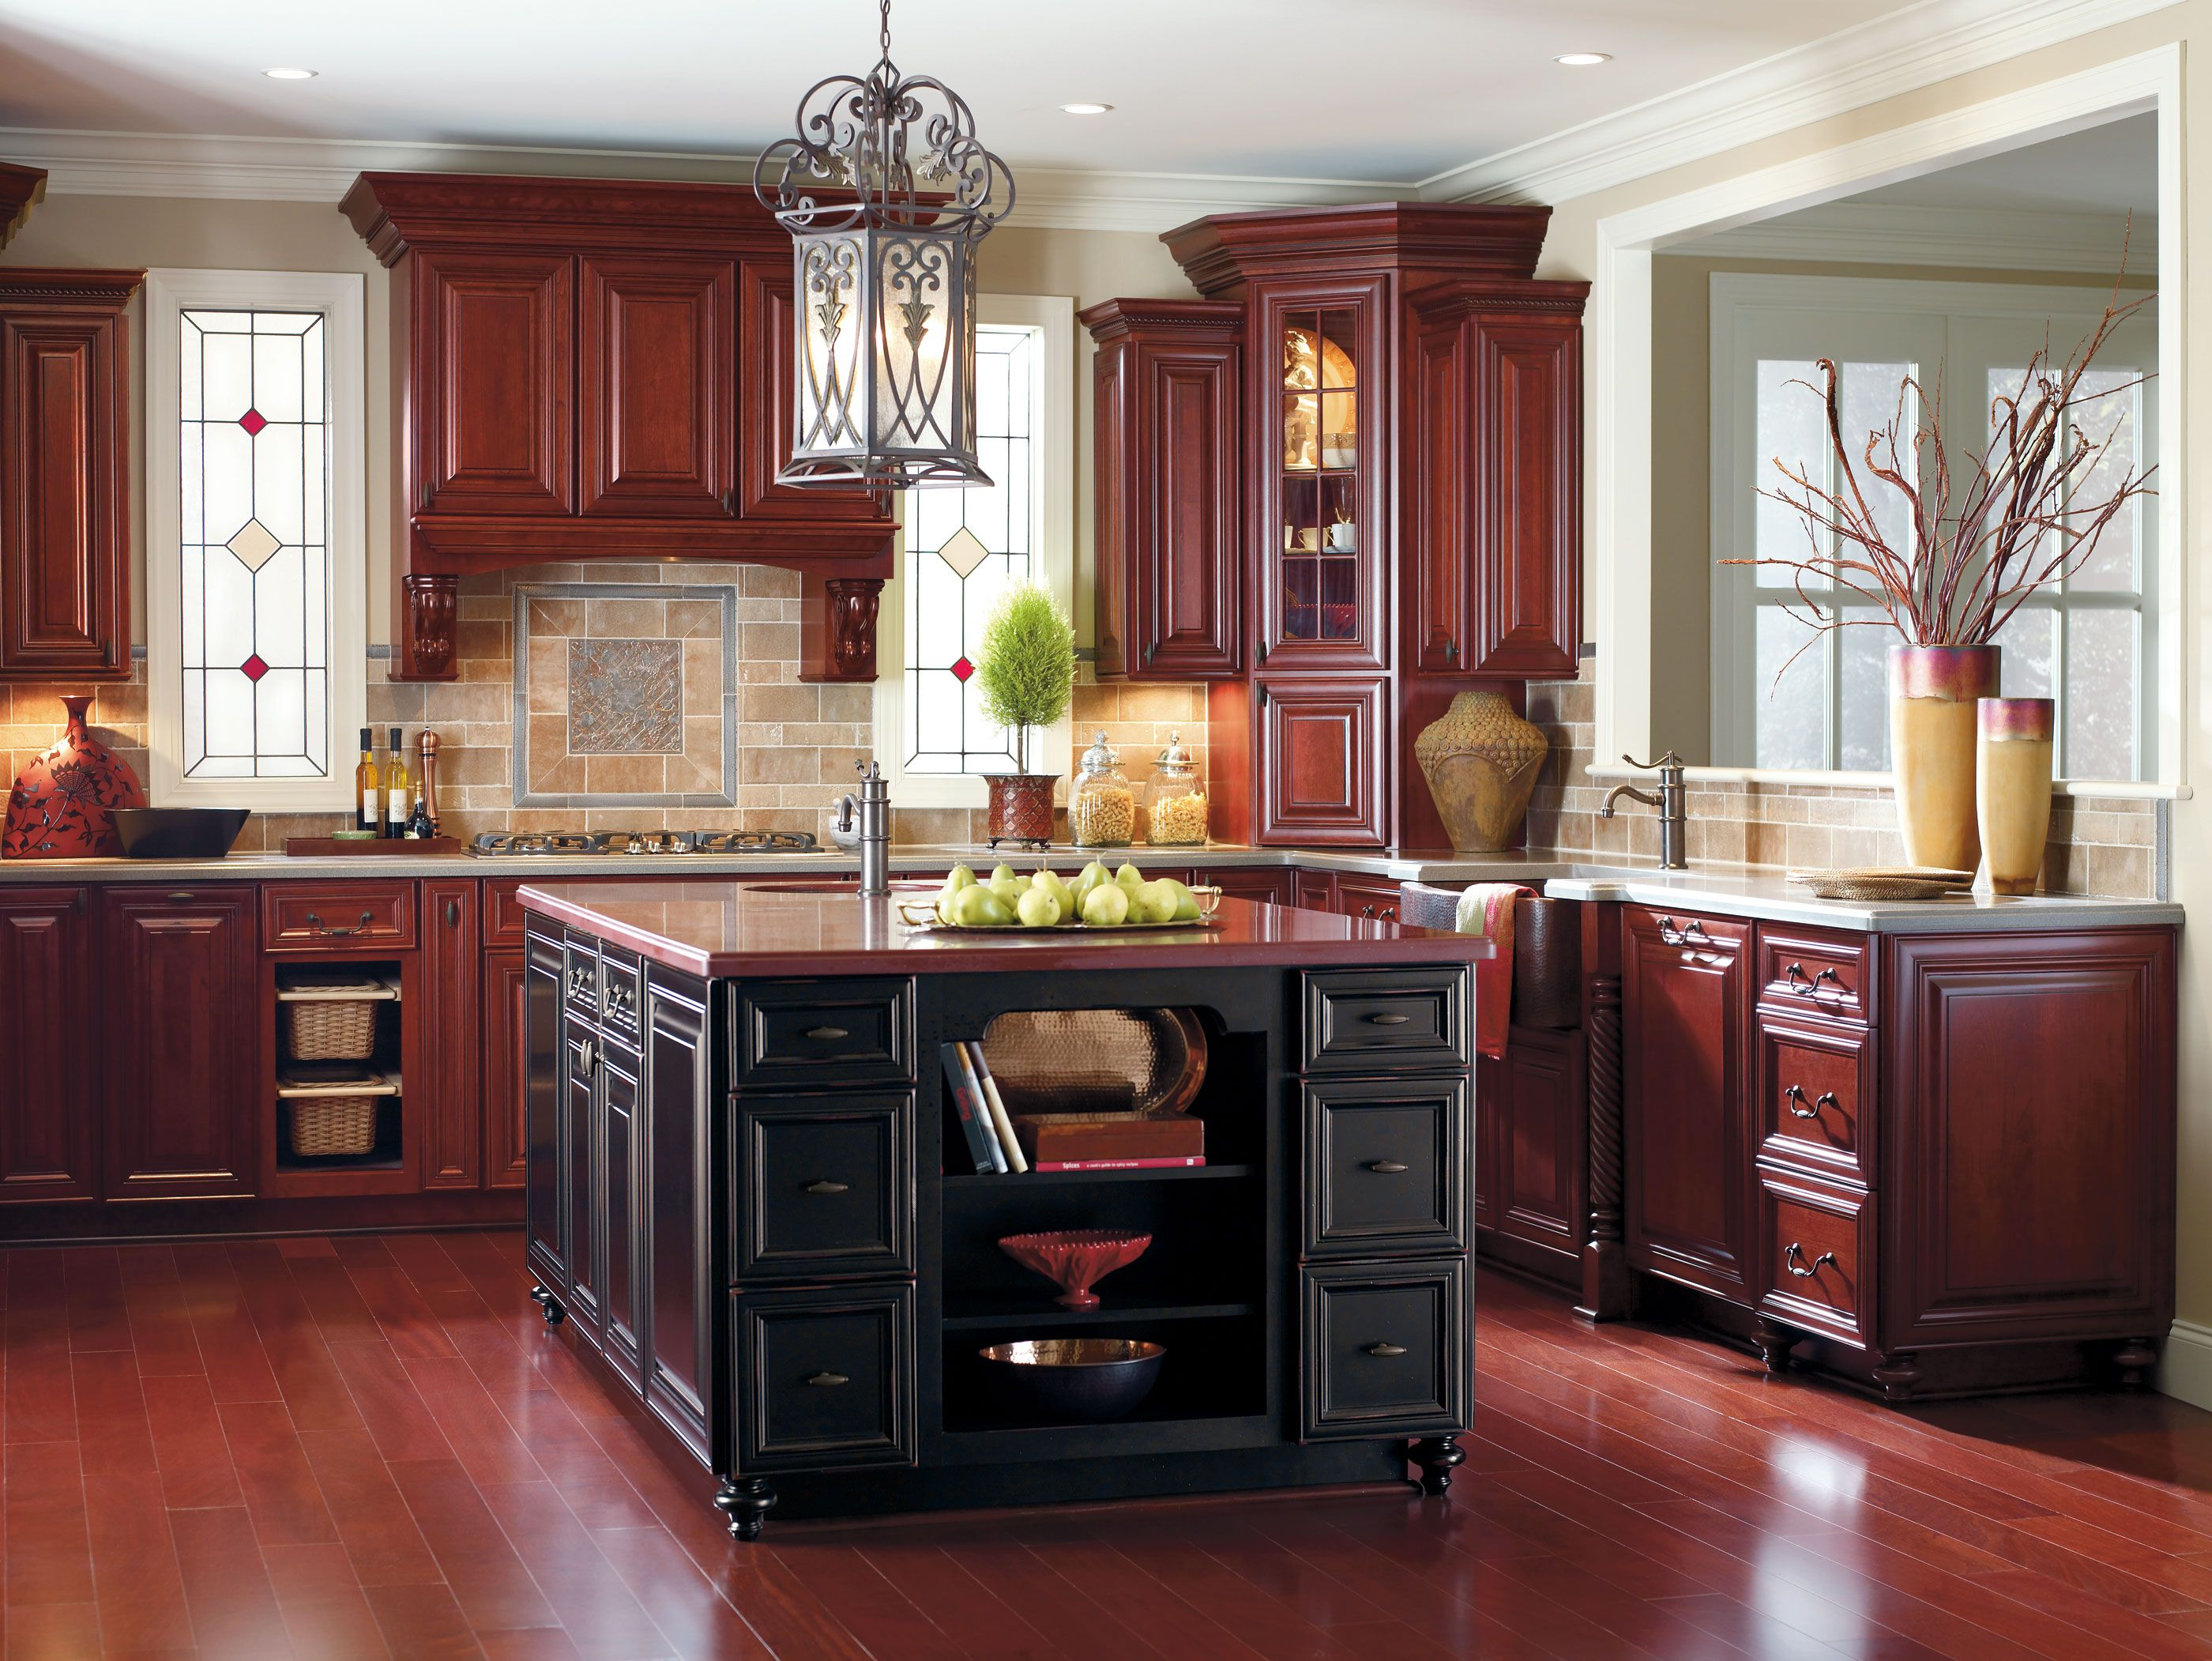 This Warm Traditional Look Is Perfectly Complemented With Just A